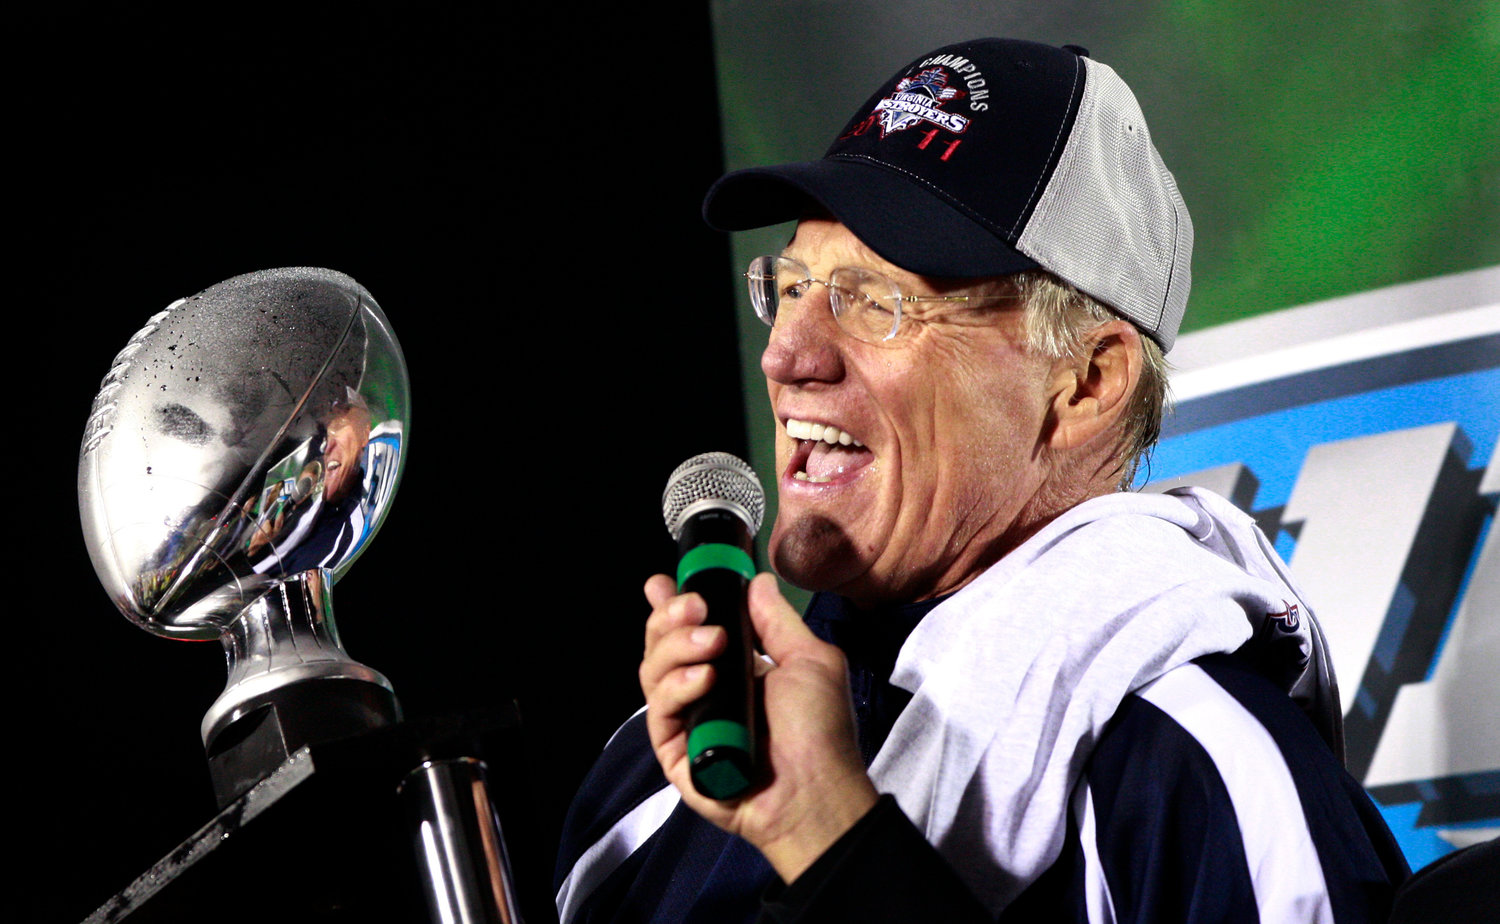 "FILE - Virginia Destroyers head coach Marty Schottenheimer speaks after defeating the Las Vegas Locomotives to win the United Football League Championship in Virginia Beach, Va., in this Oct. 21, 2011, file photo. Marty Schottenheimer, who won 200 regular-season games with four NFL teams thanks to his ""Martyball"" brand of smash-mouth football but regularly fell short in the playoffs, has died. He was 77. Schottenheimer died Monday night, Feb. 8, 2021,  at a hospice in Charlotte, North Carolina, his family said through Bob Moore, former Kansas City Chiefs publicist. (L. Todd Spencer/The Virginian-Pilot via AP)"